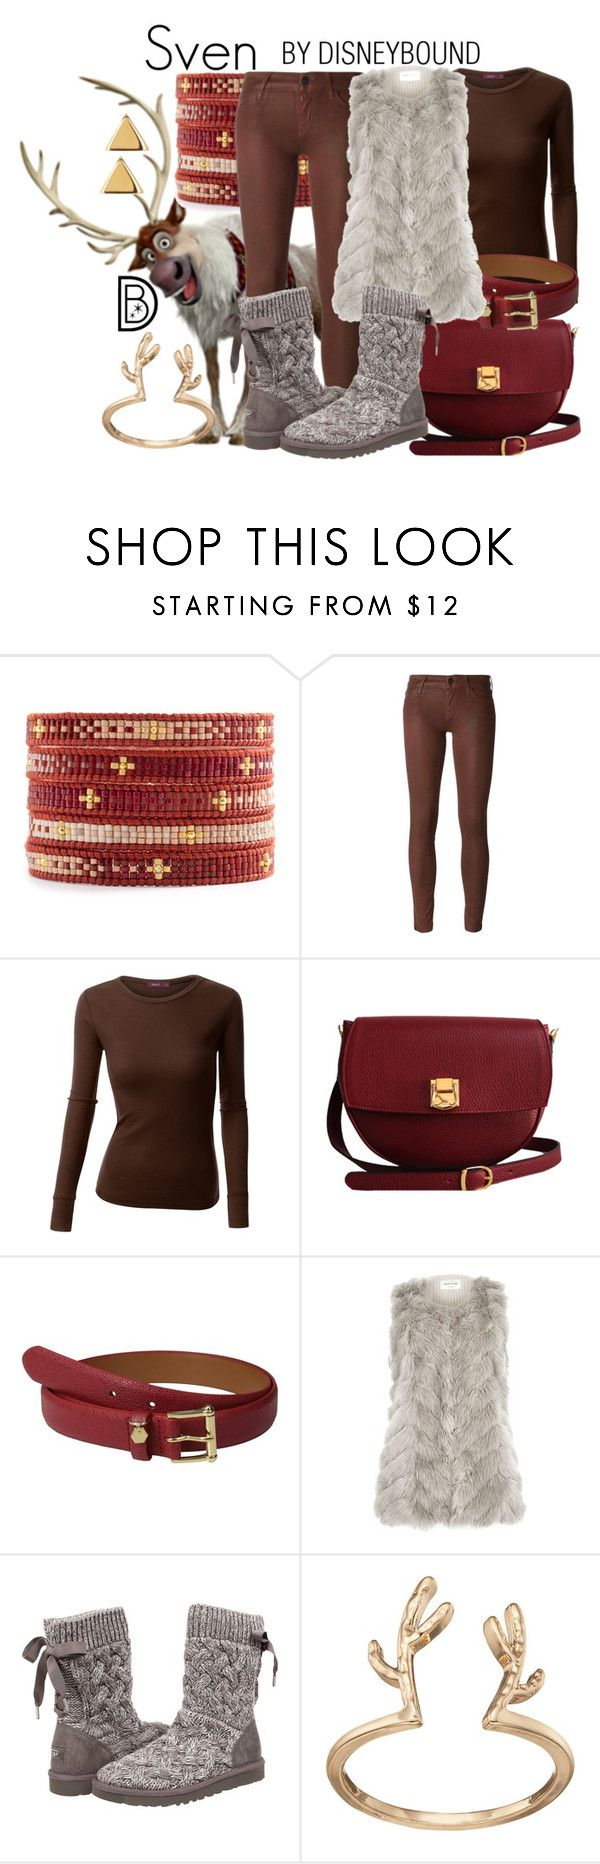 """Sven"" by leslieakay ❤ liked on Polyvore featuring Chan Luu, Koral, Doublju, The Code, Lauren Ralph Lauren, River Island, UGG Australia, LC Lauren Conrad, Argento Vivo and disney"